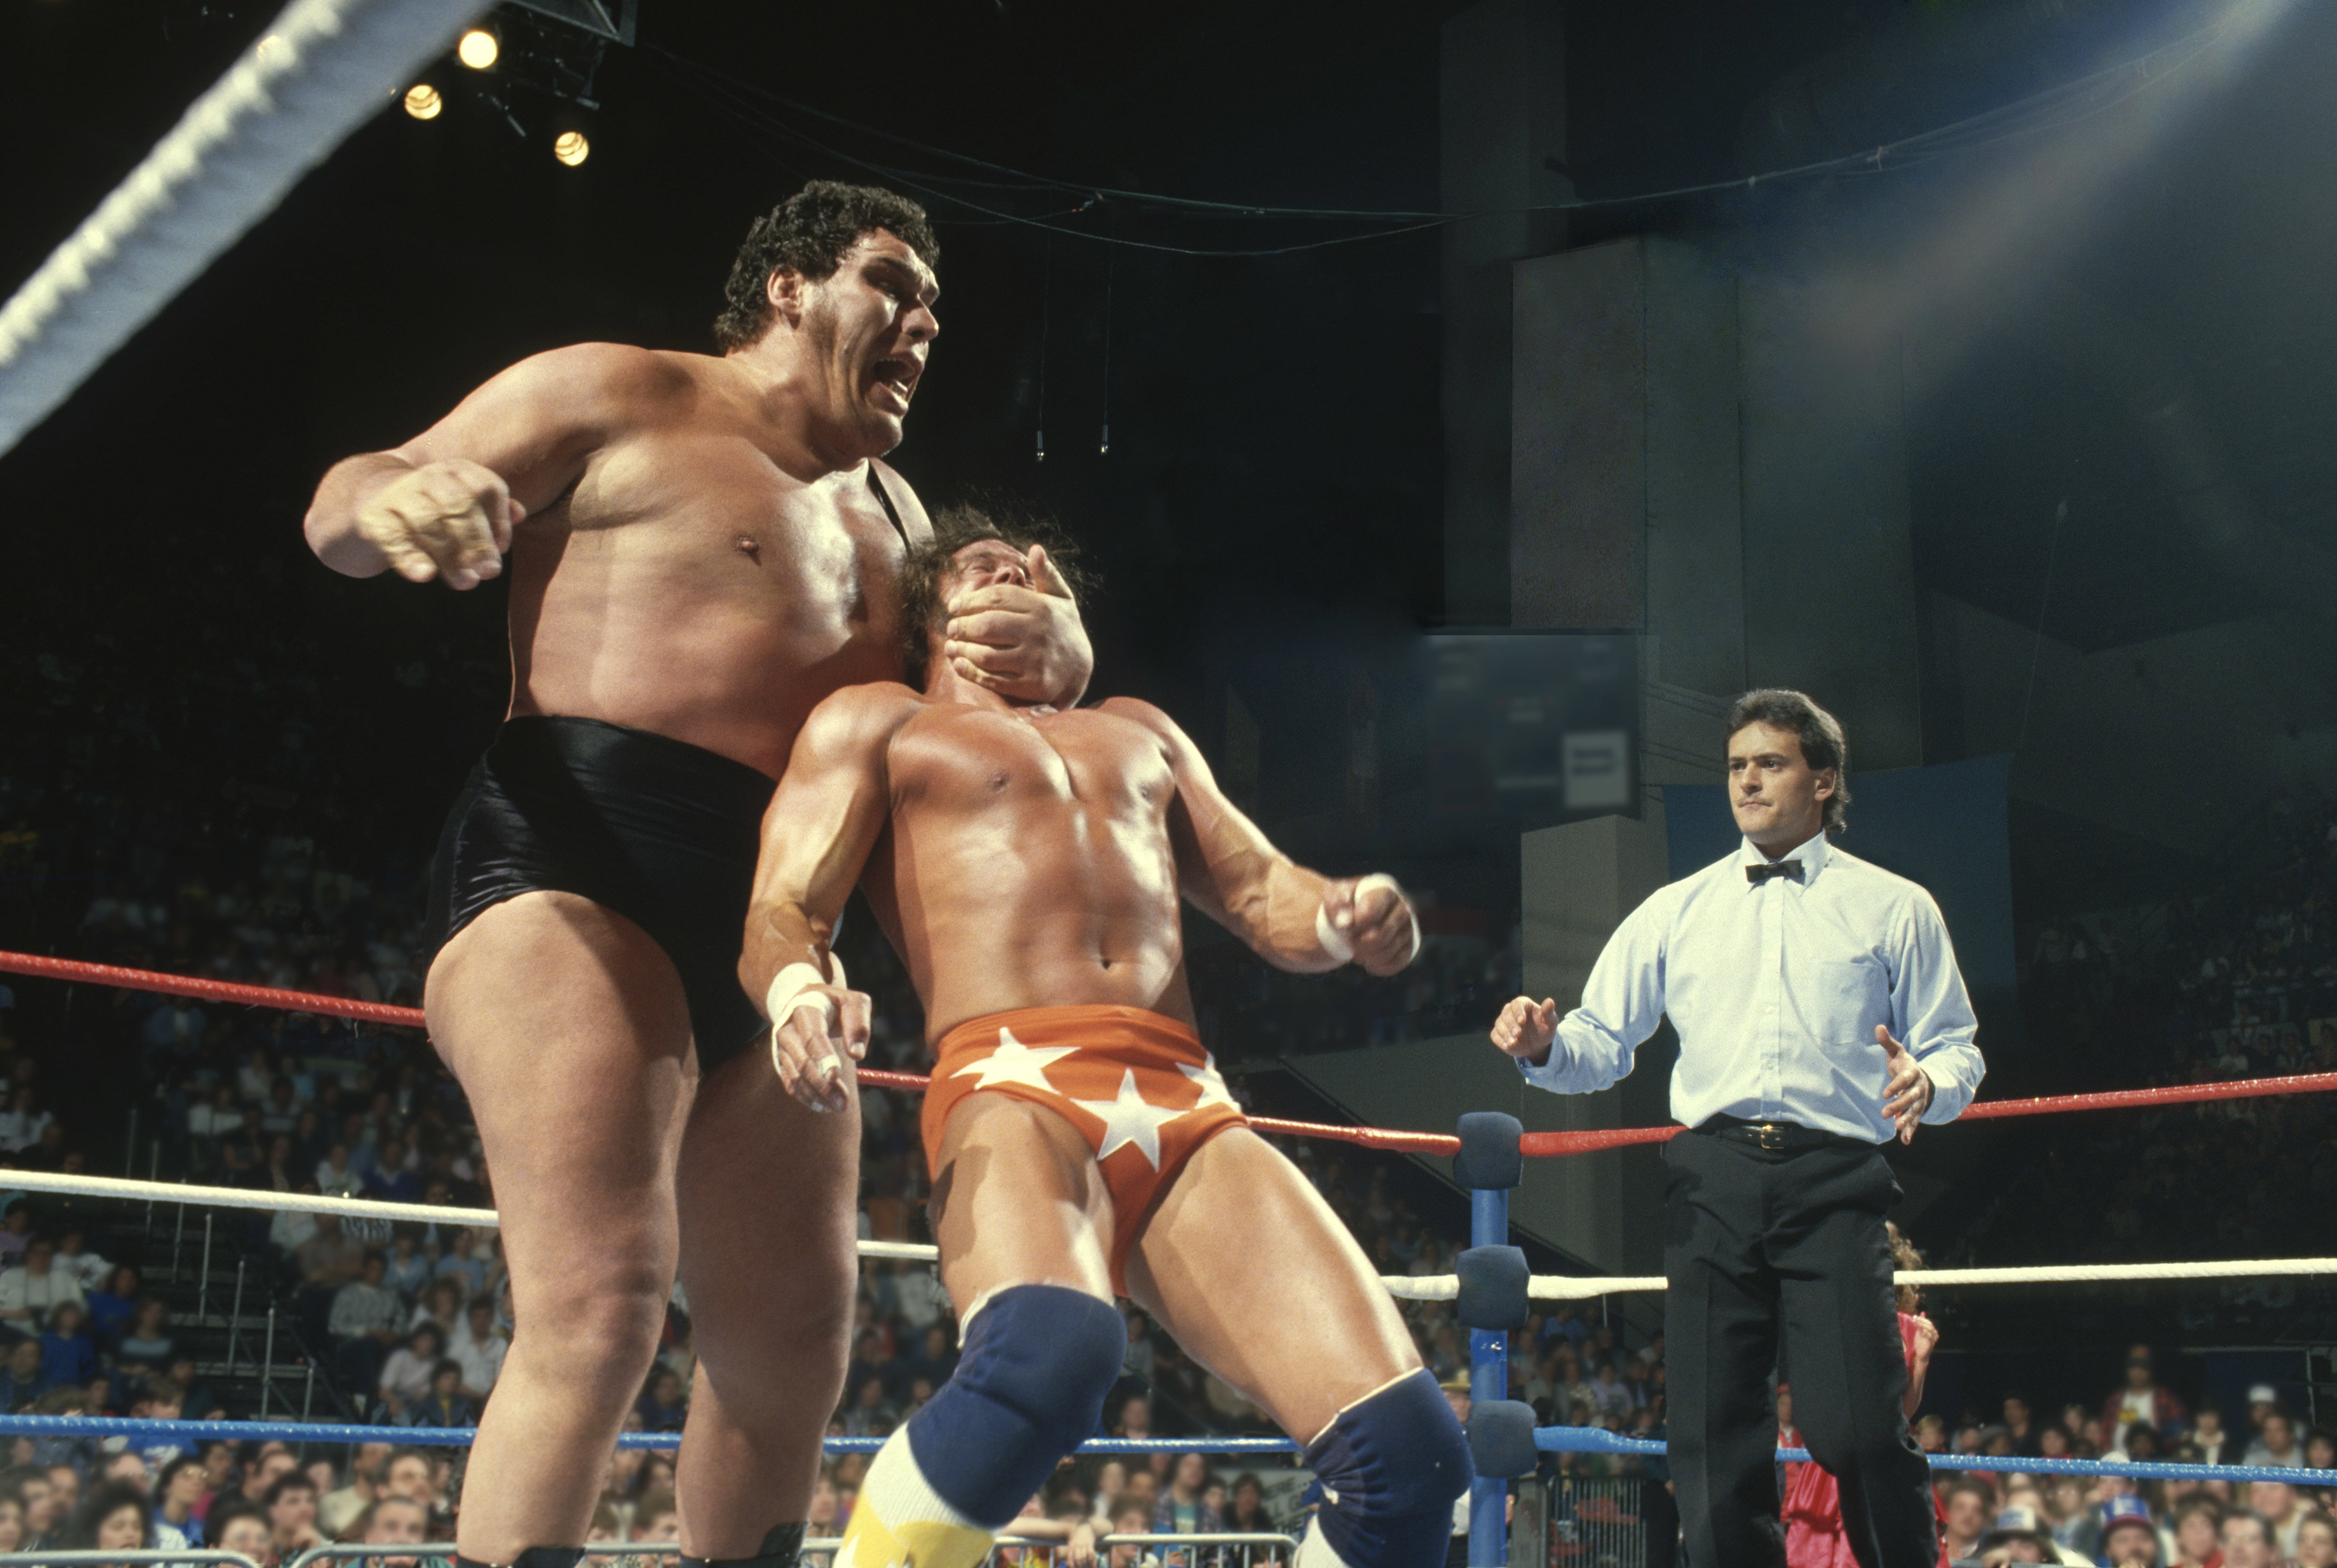 HBO's 'Andre the Giant' review: An interesting, somber look at the Eighth Wonder of the World